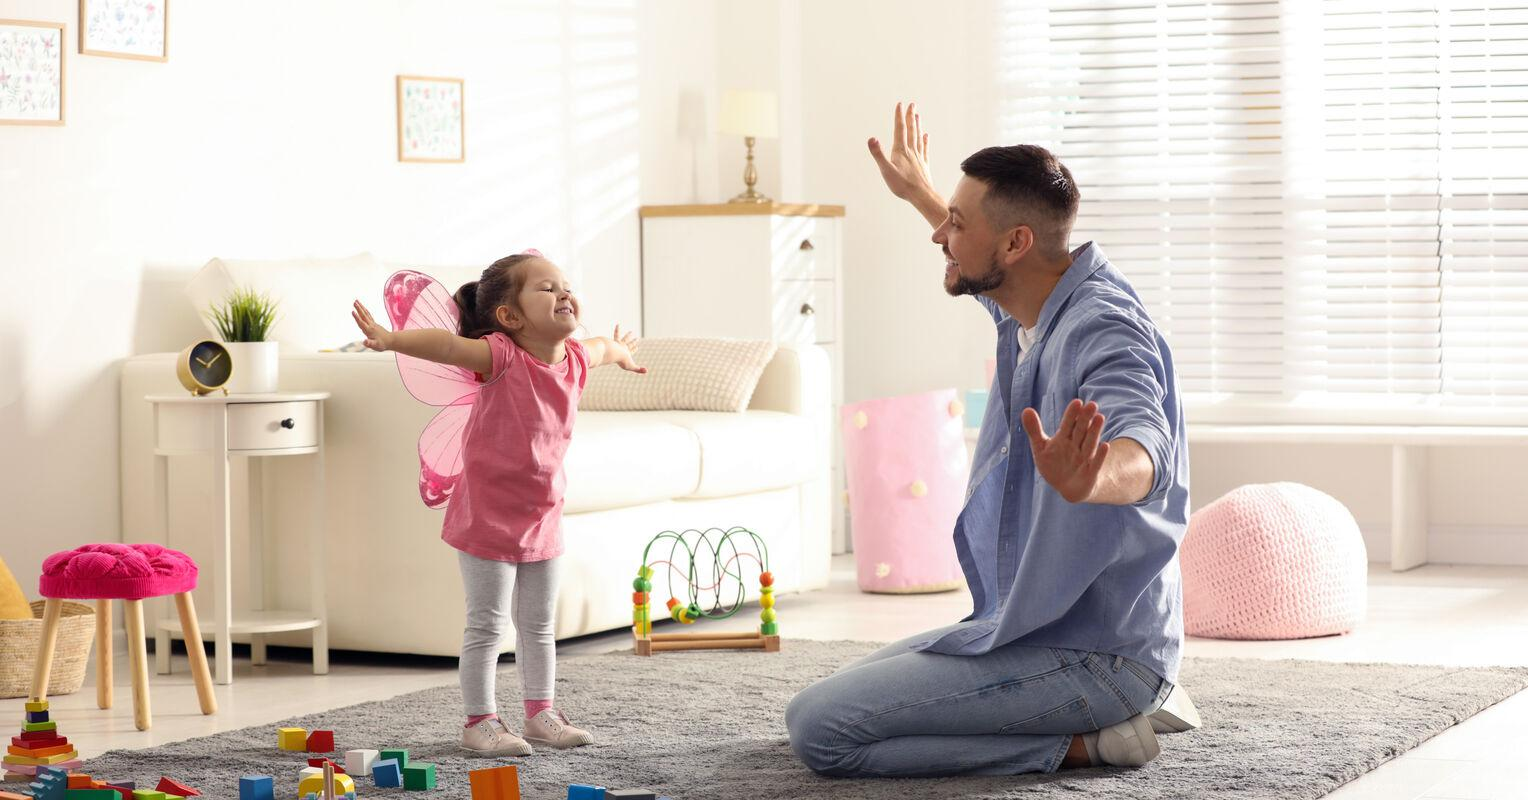 How to Structure Special Time With Your Child